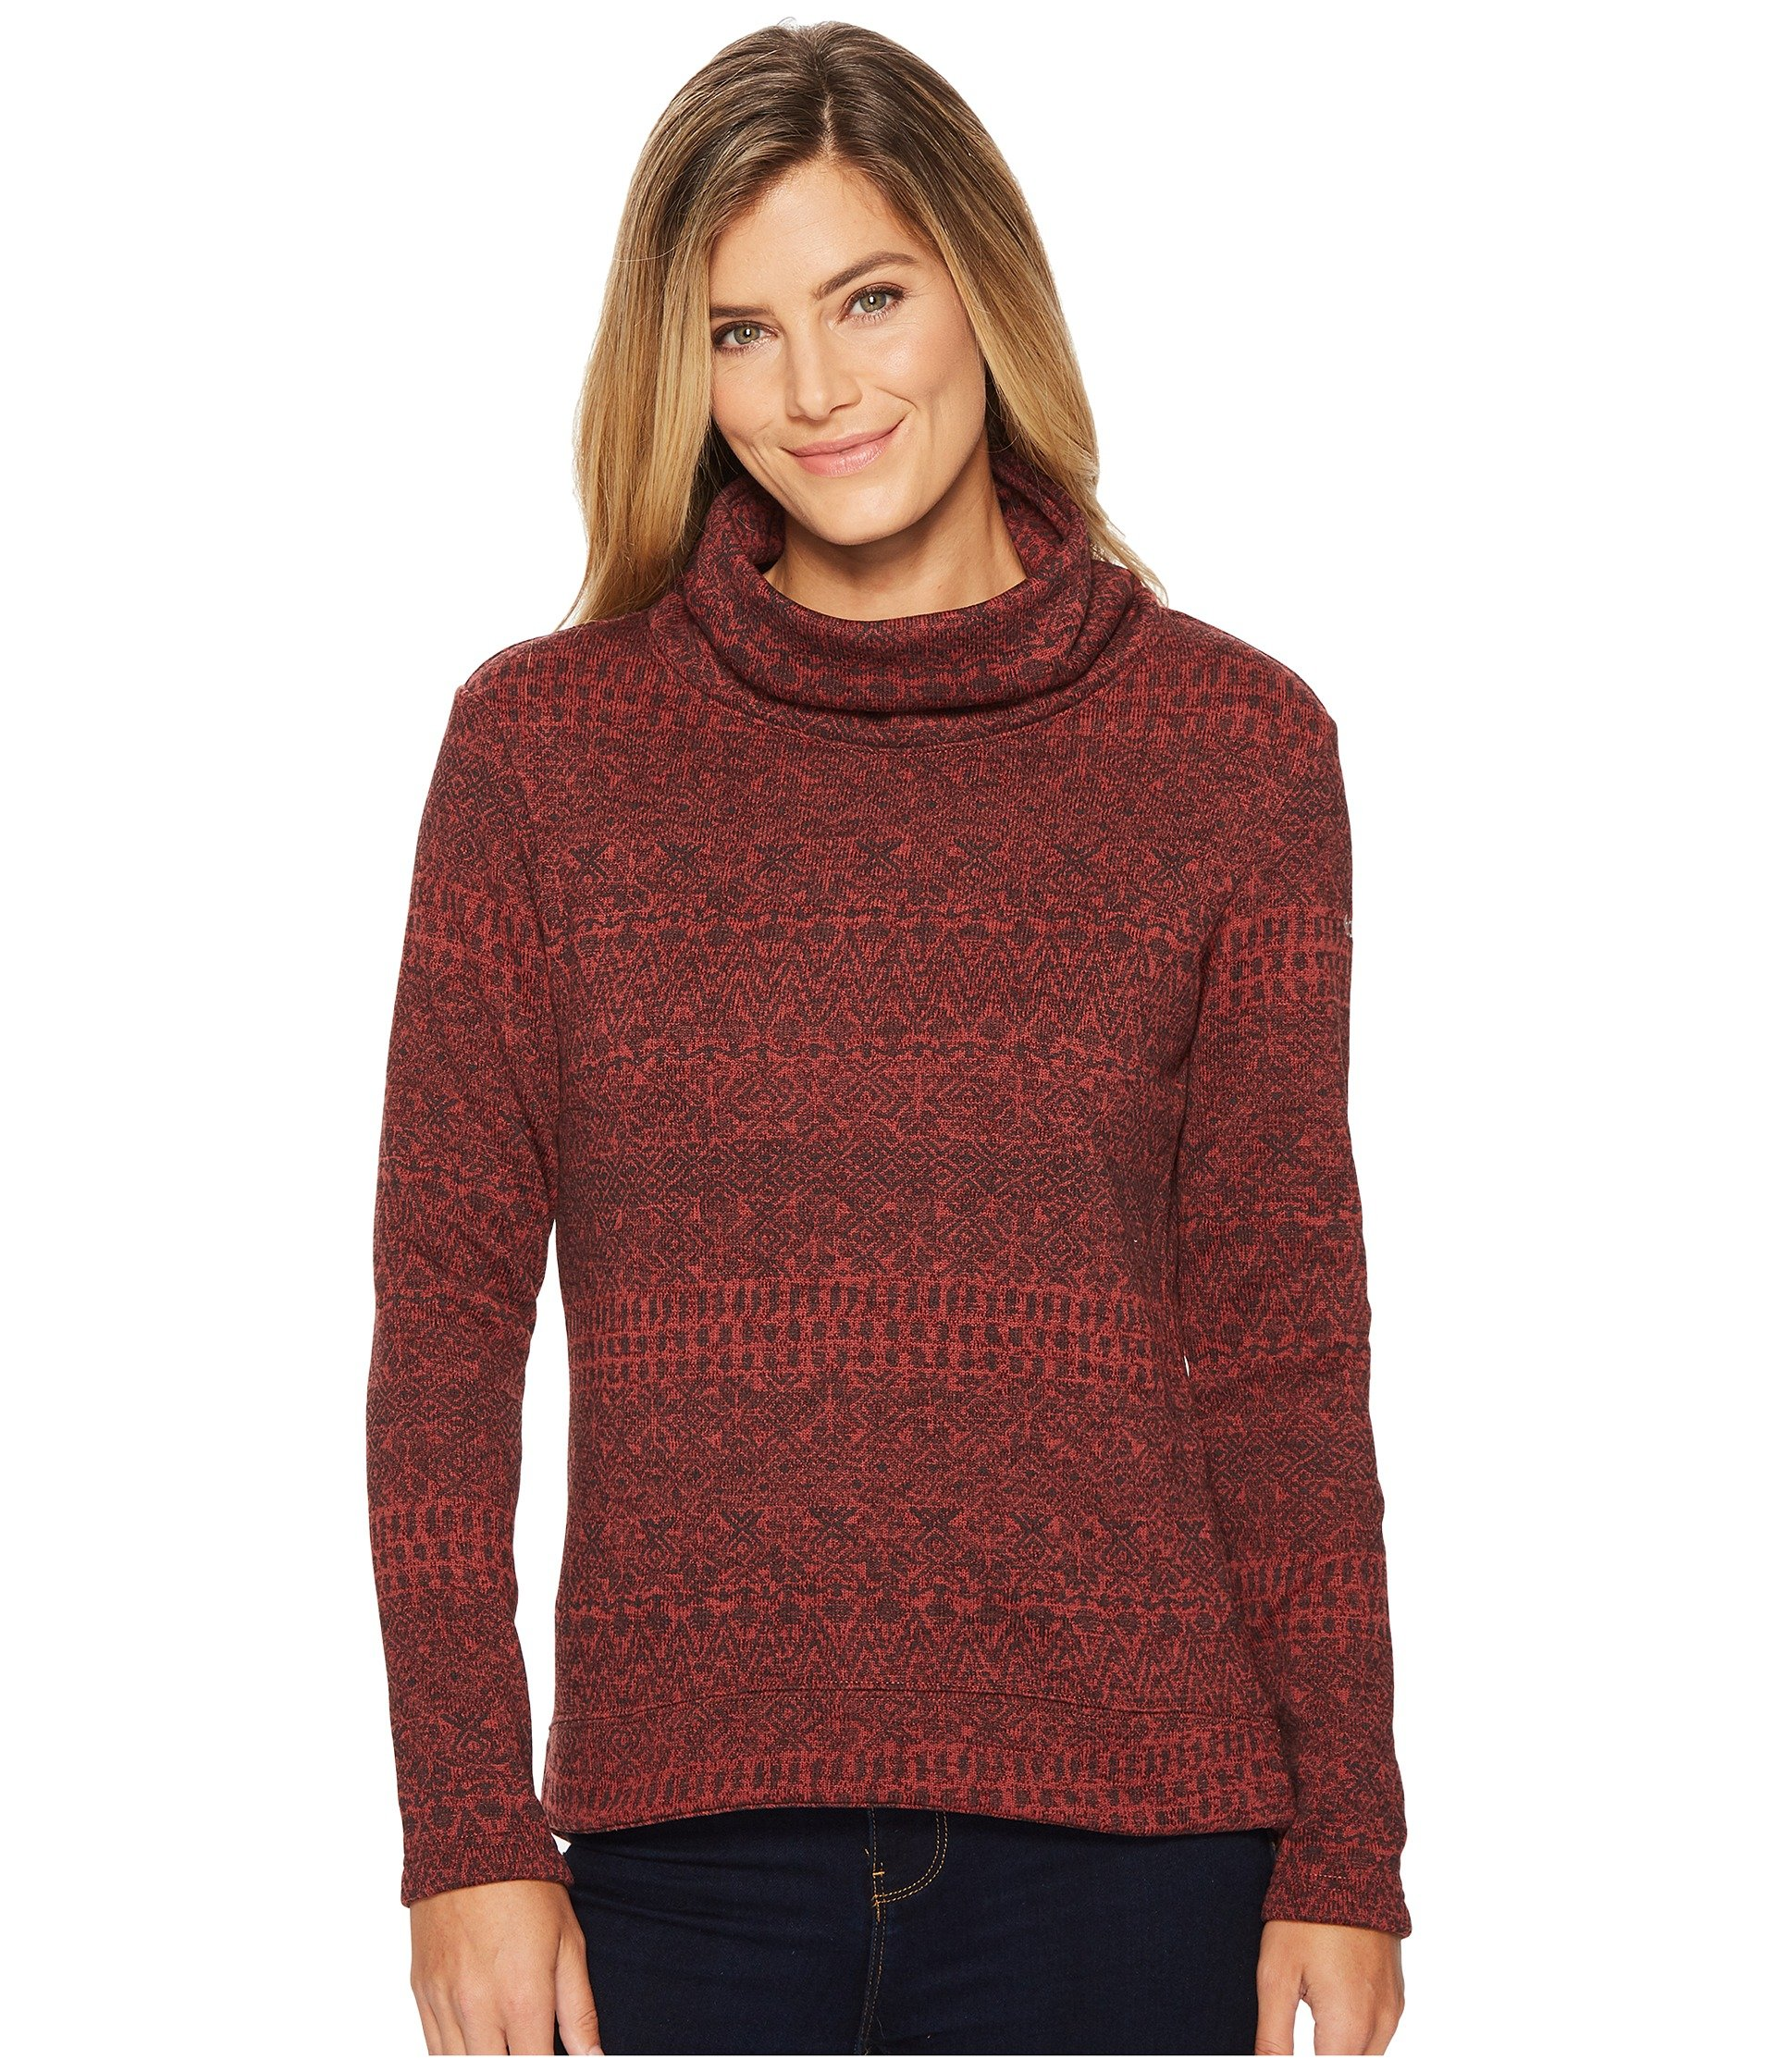 Sweater Season Printed Pullover